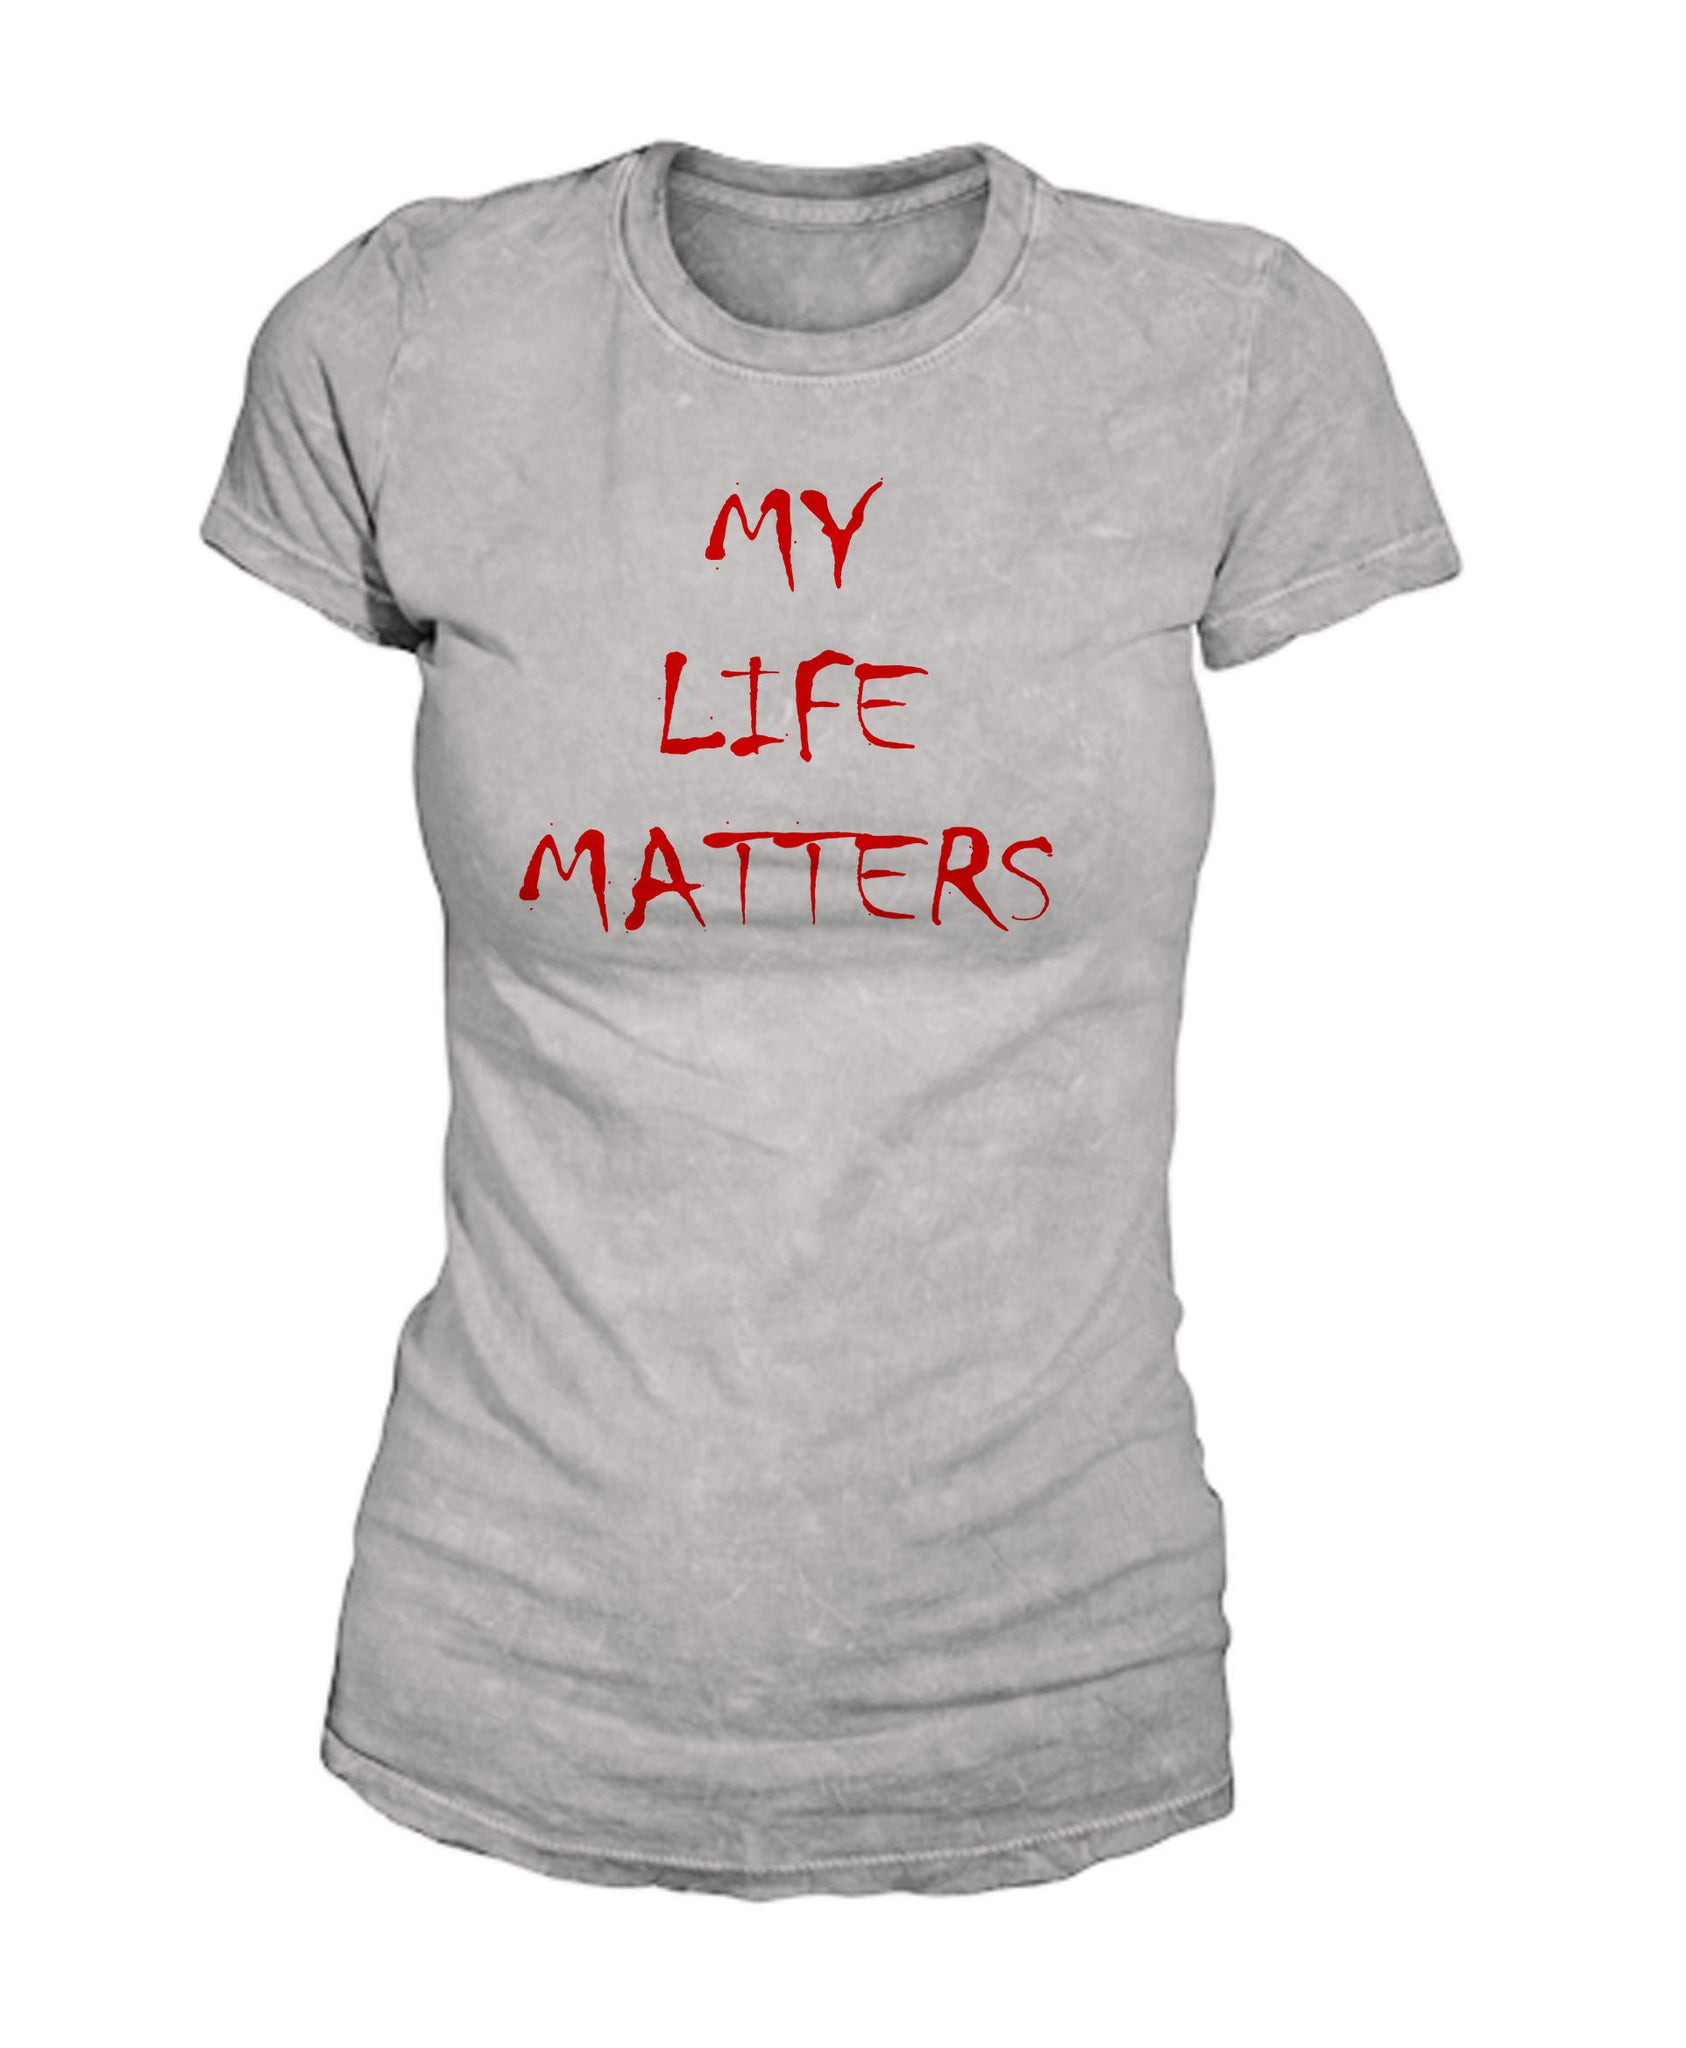 My LIfe Matters by NHZ 4f wht